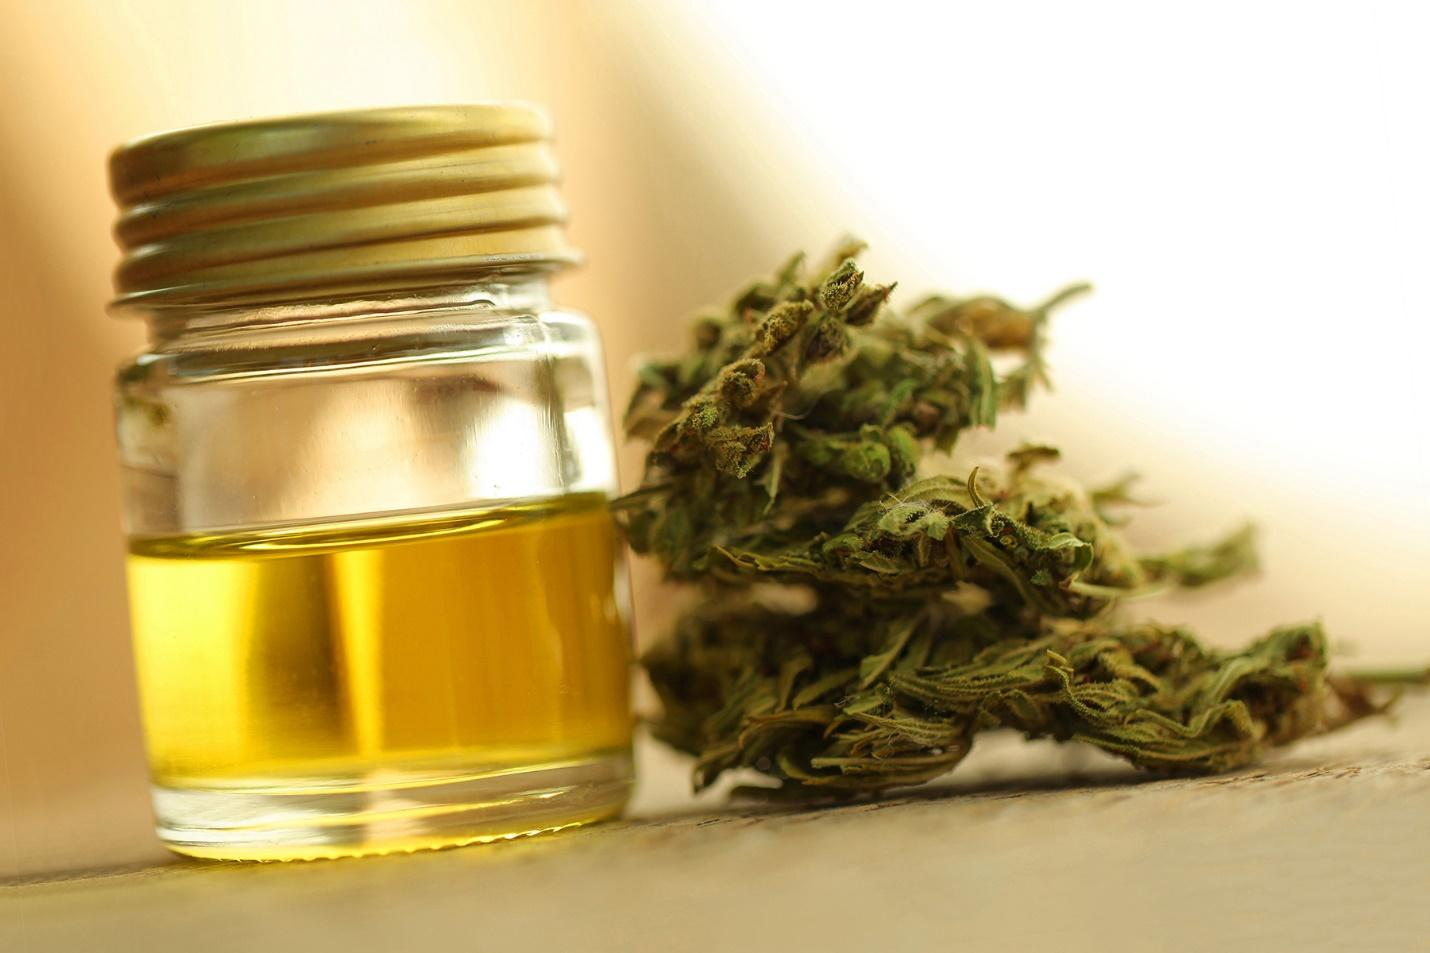 C:\Users\PC\Downloads\1800x1200_all_about_cbd_oil_slideshow.jpg